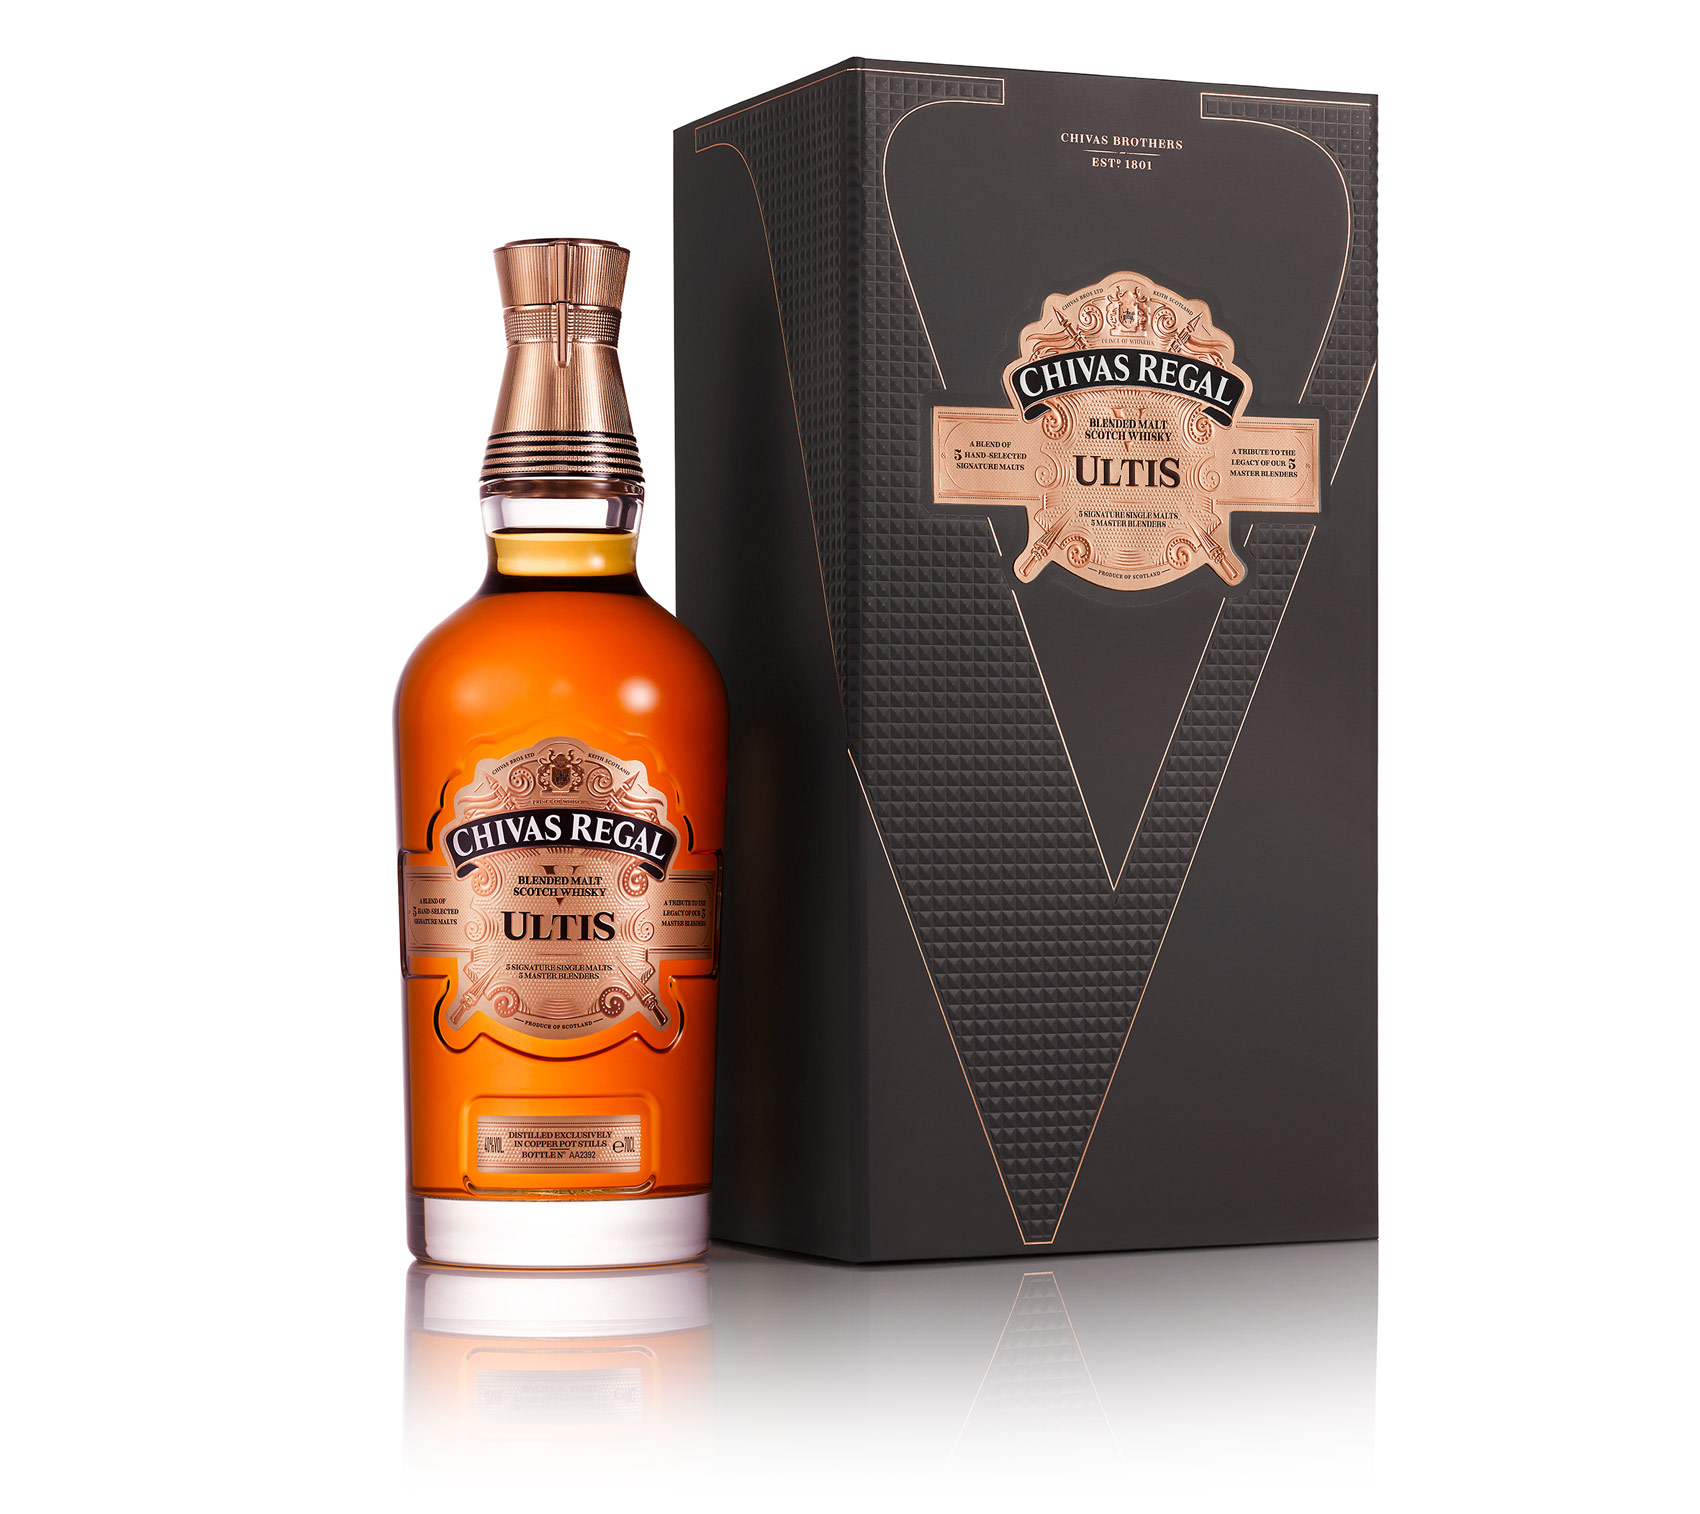 chivas-regal-ultis-4